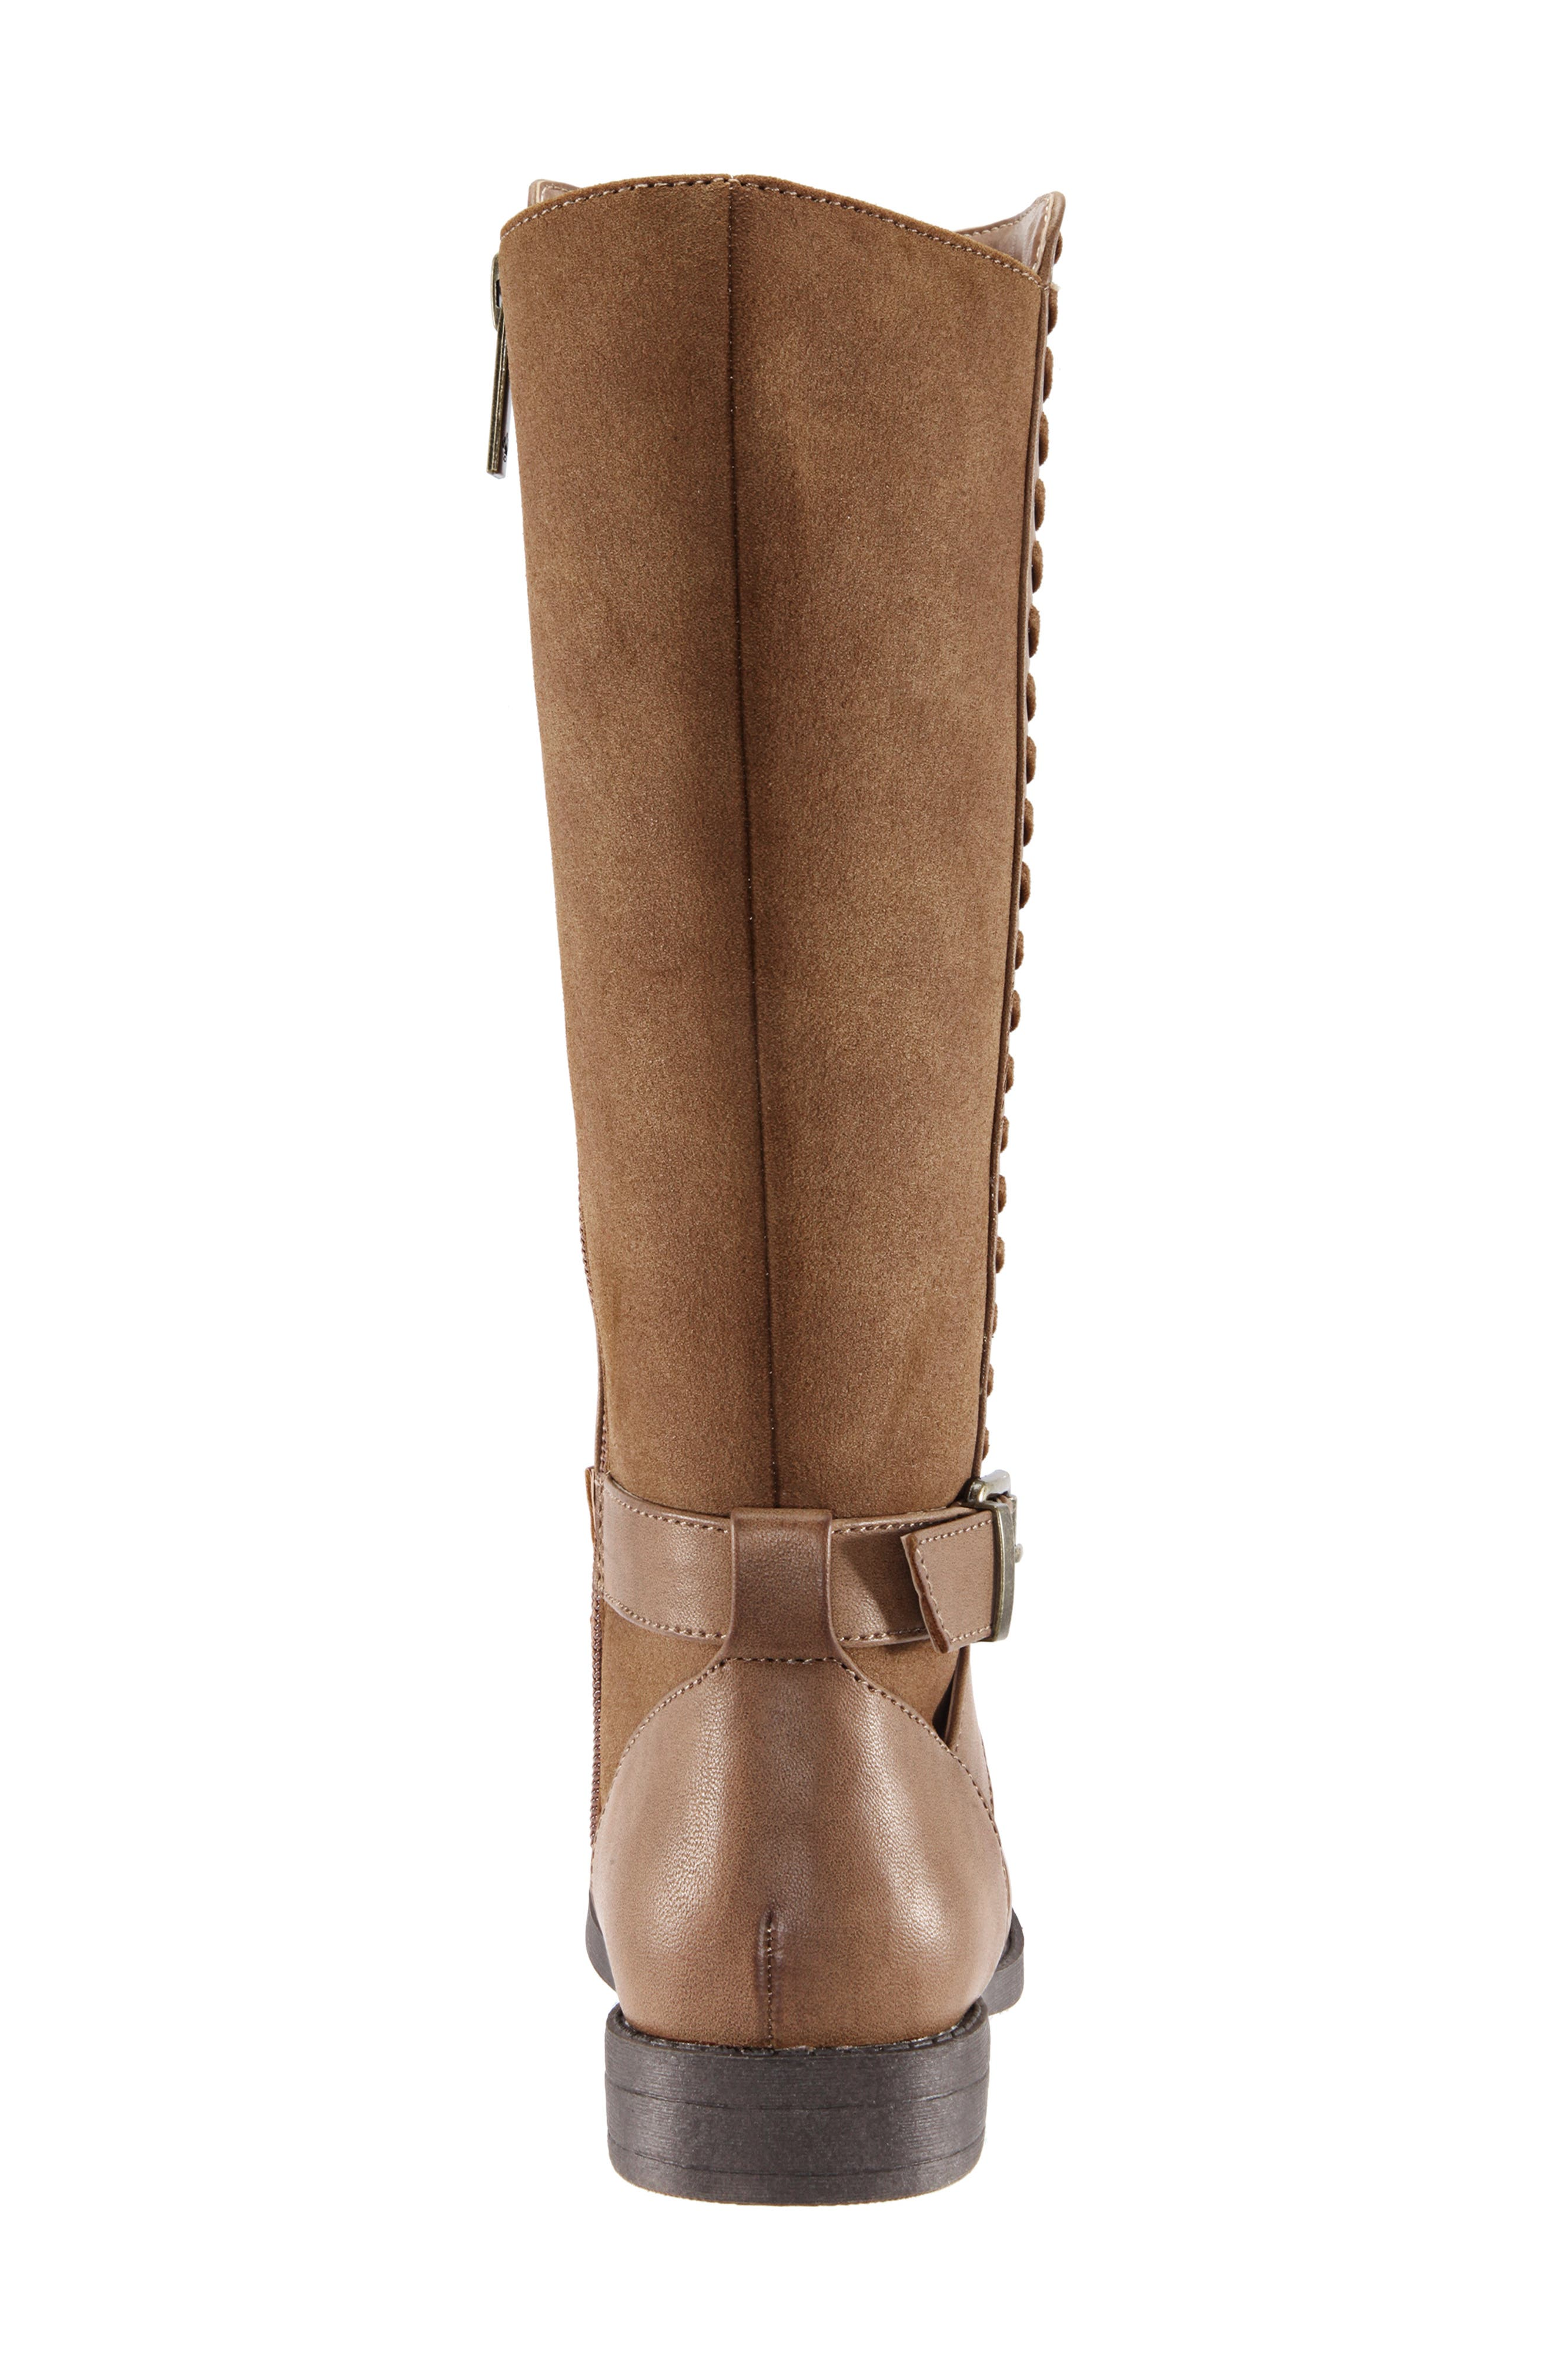 Jeanie Riding Boot,                             Alternate thumbnail 6, color,                             SADDLE BURNISHED